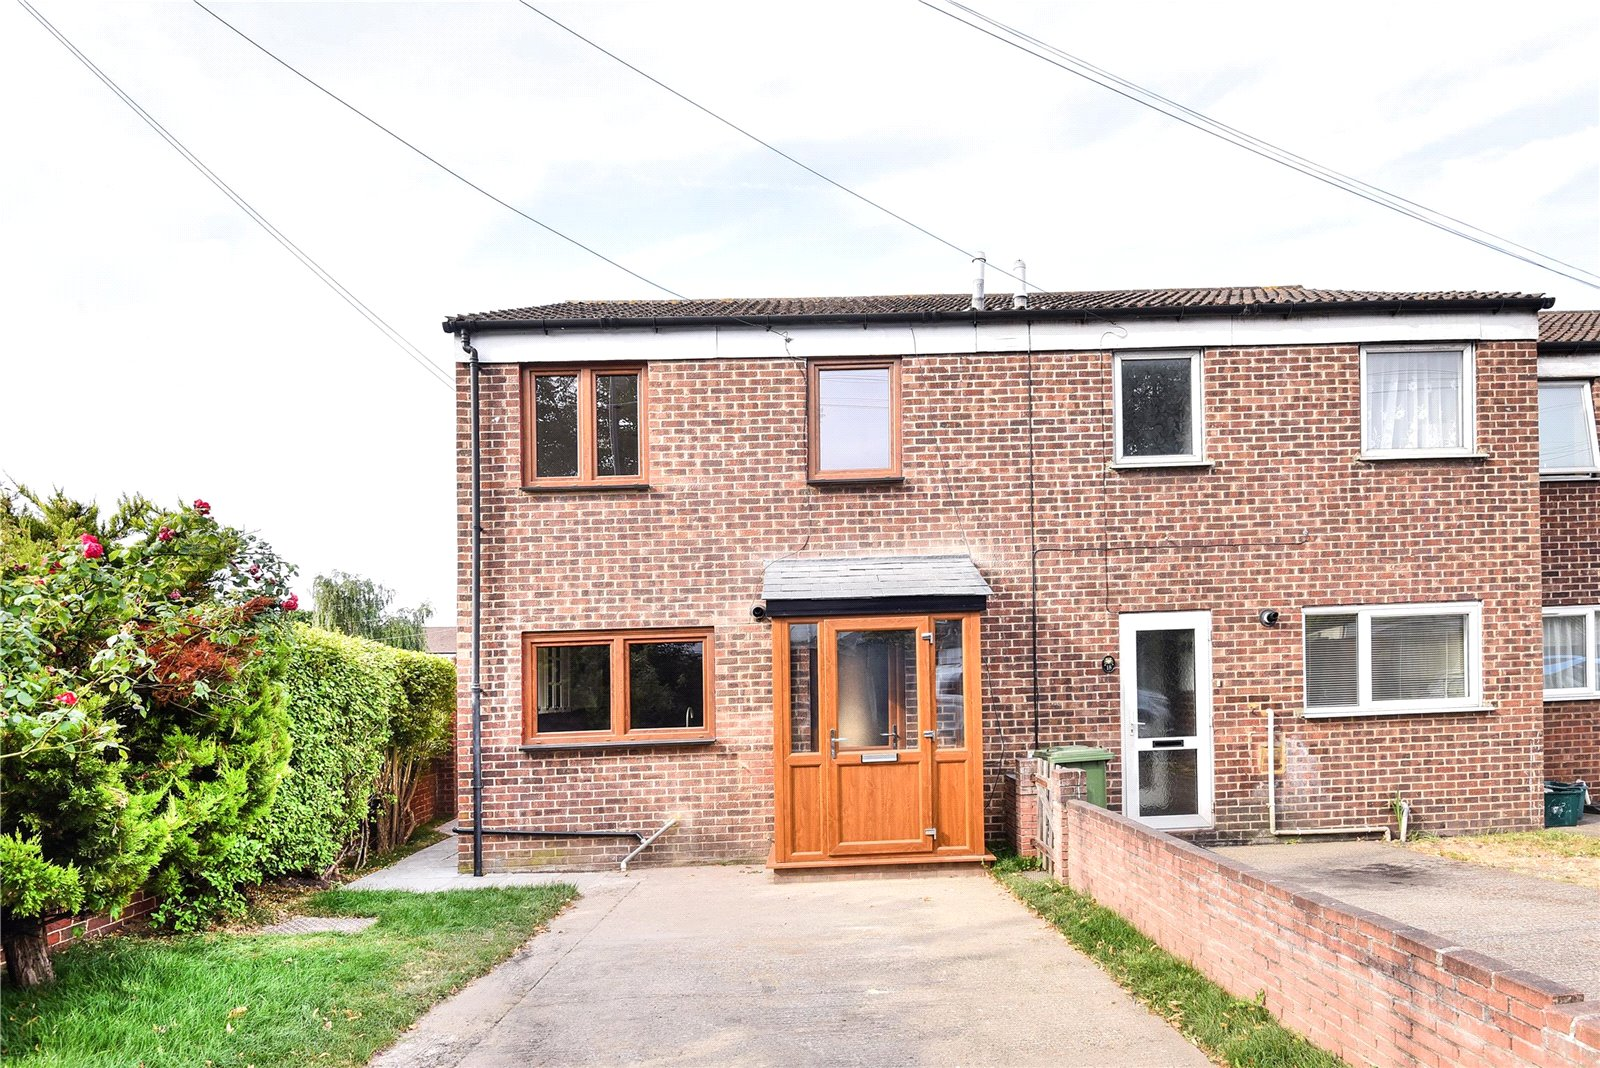 3 bed house for sale in Streatham 3